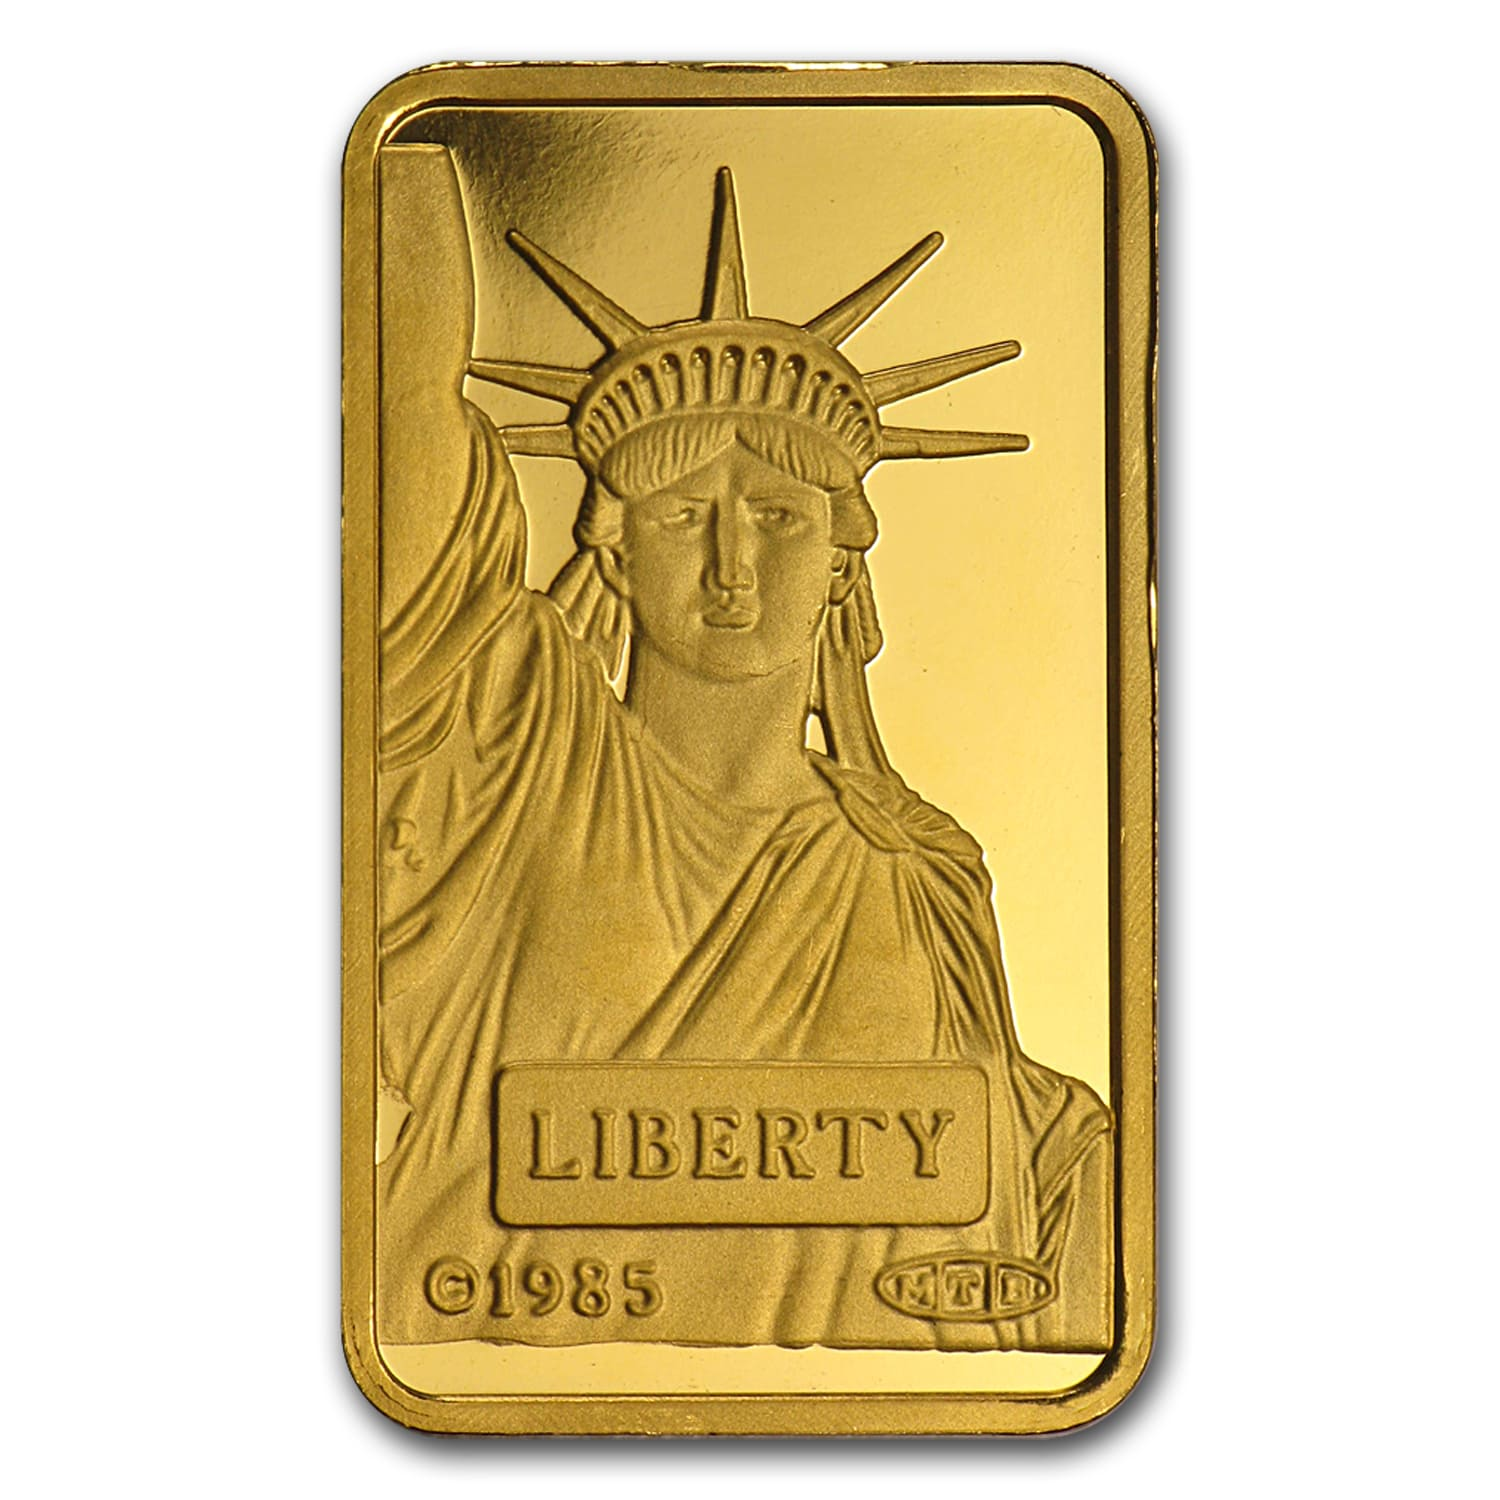 10 gram Gold Bars - Credit Suisse (Statue of Liberty)